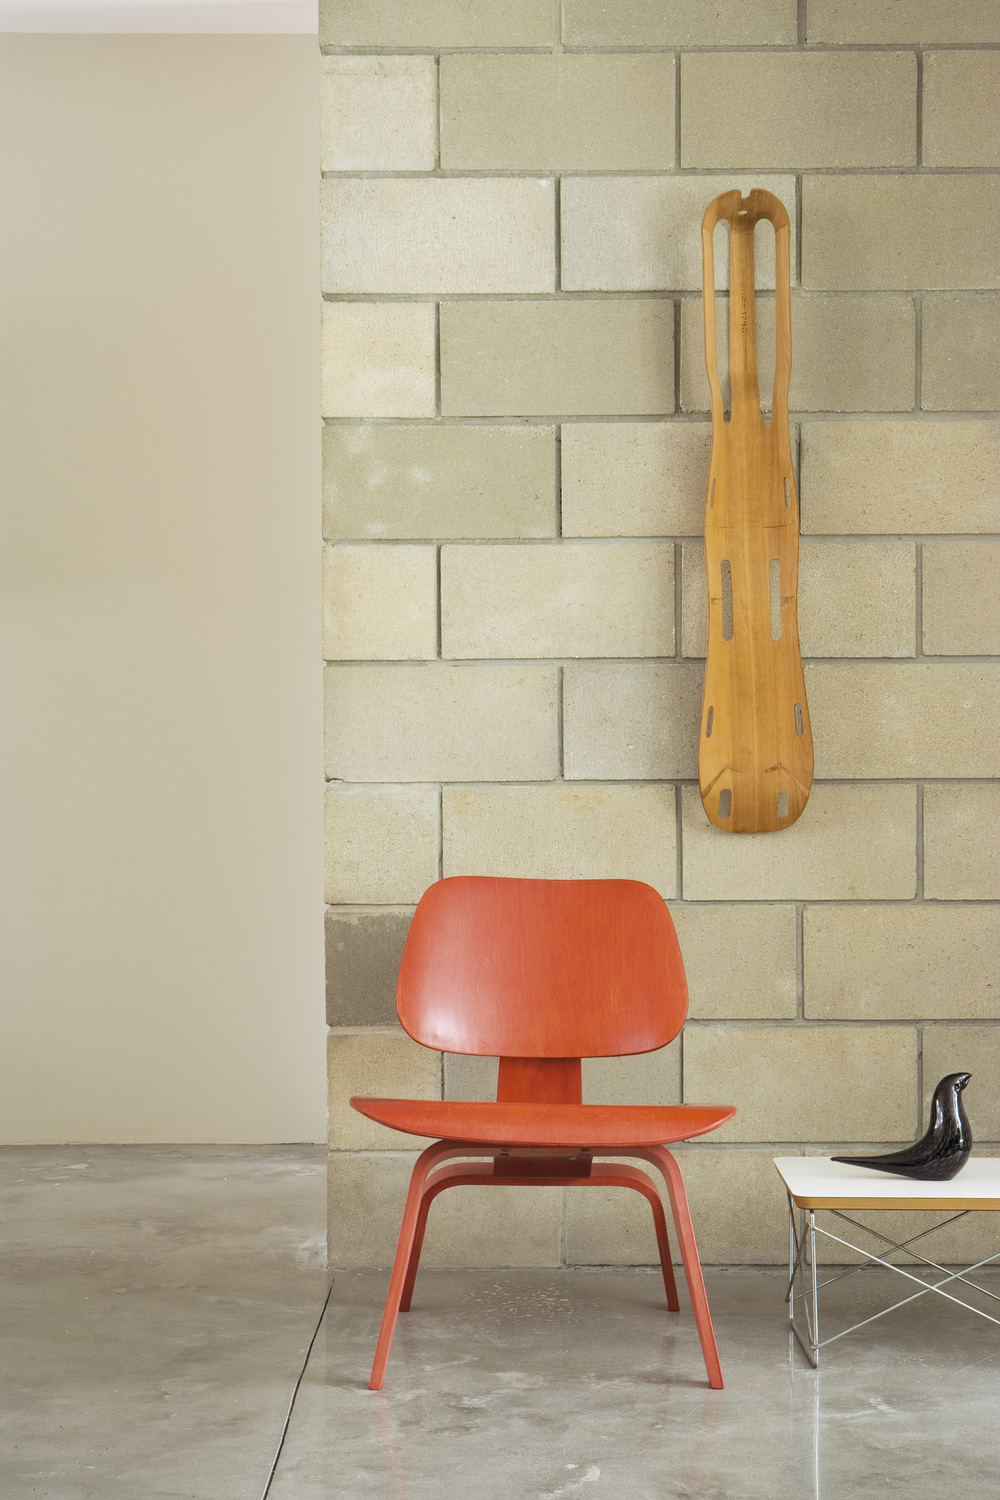 E is for Eames... A plywood splint designed by Charles and Ray Eames for the US Navy hangs above a red Eames 'DCW' chair